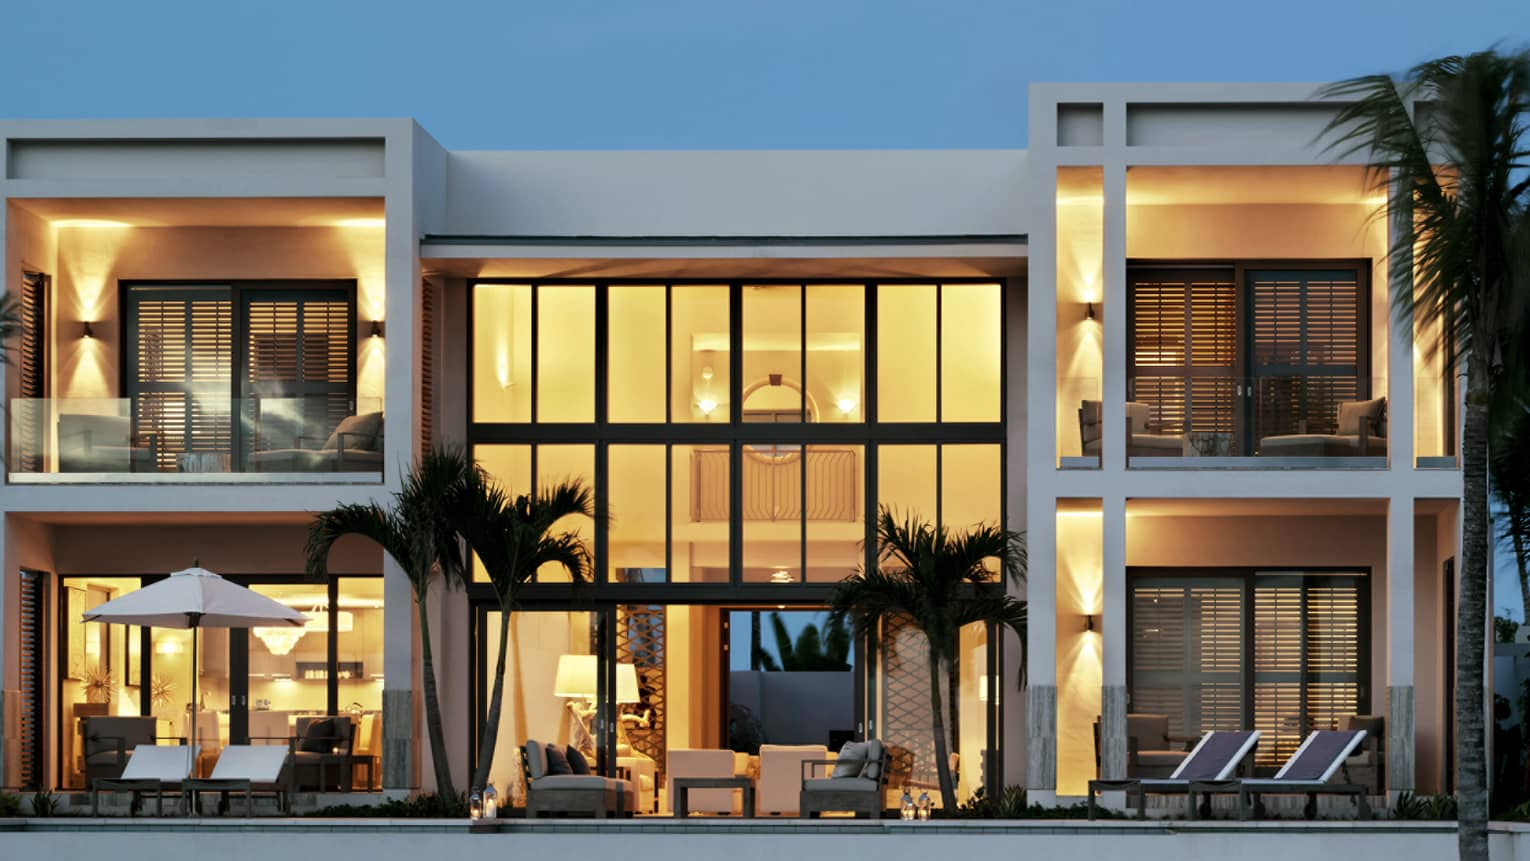 Exterior view of five-bedroom, white beachfront villa at dusk, two storeys with floor-to-ceiling illuminated windows